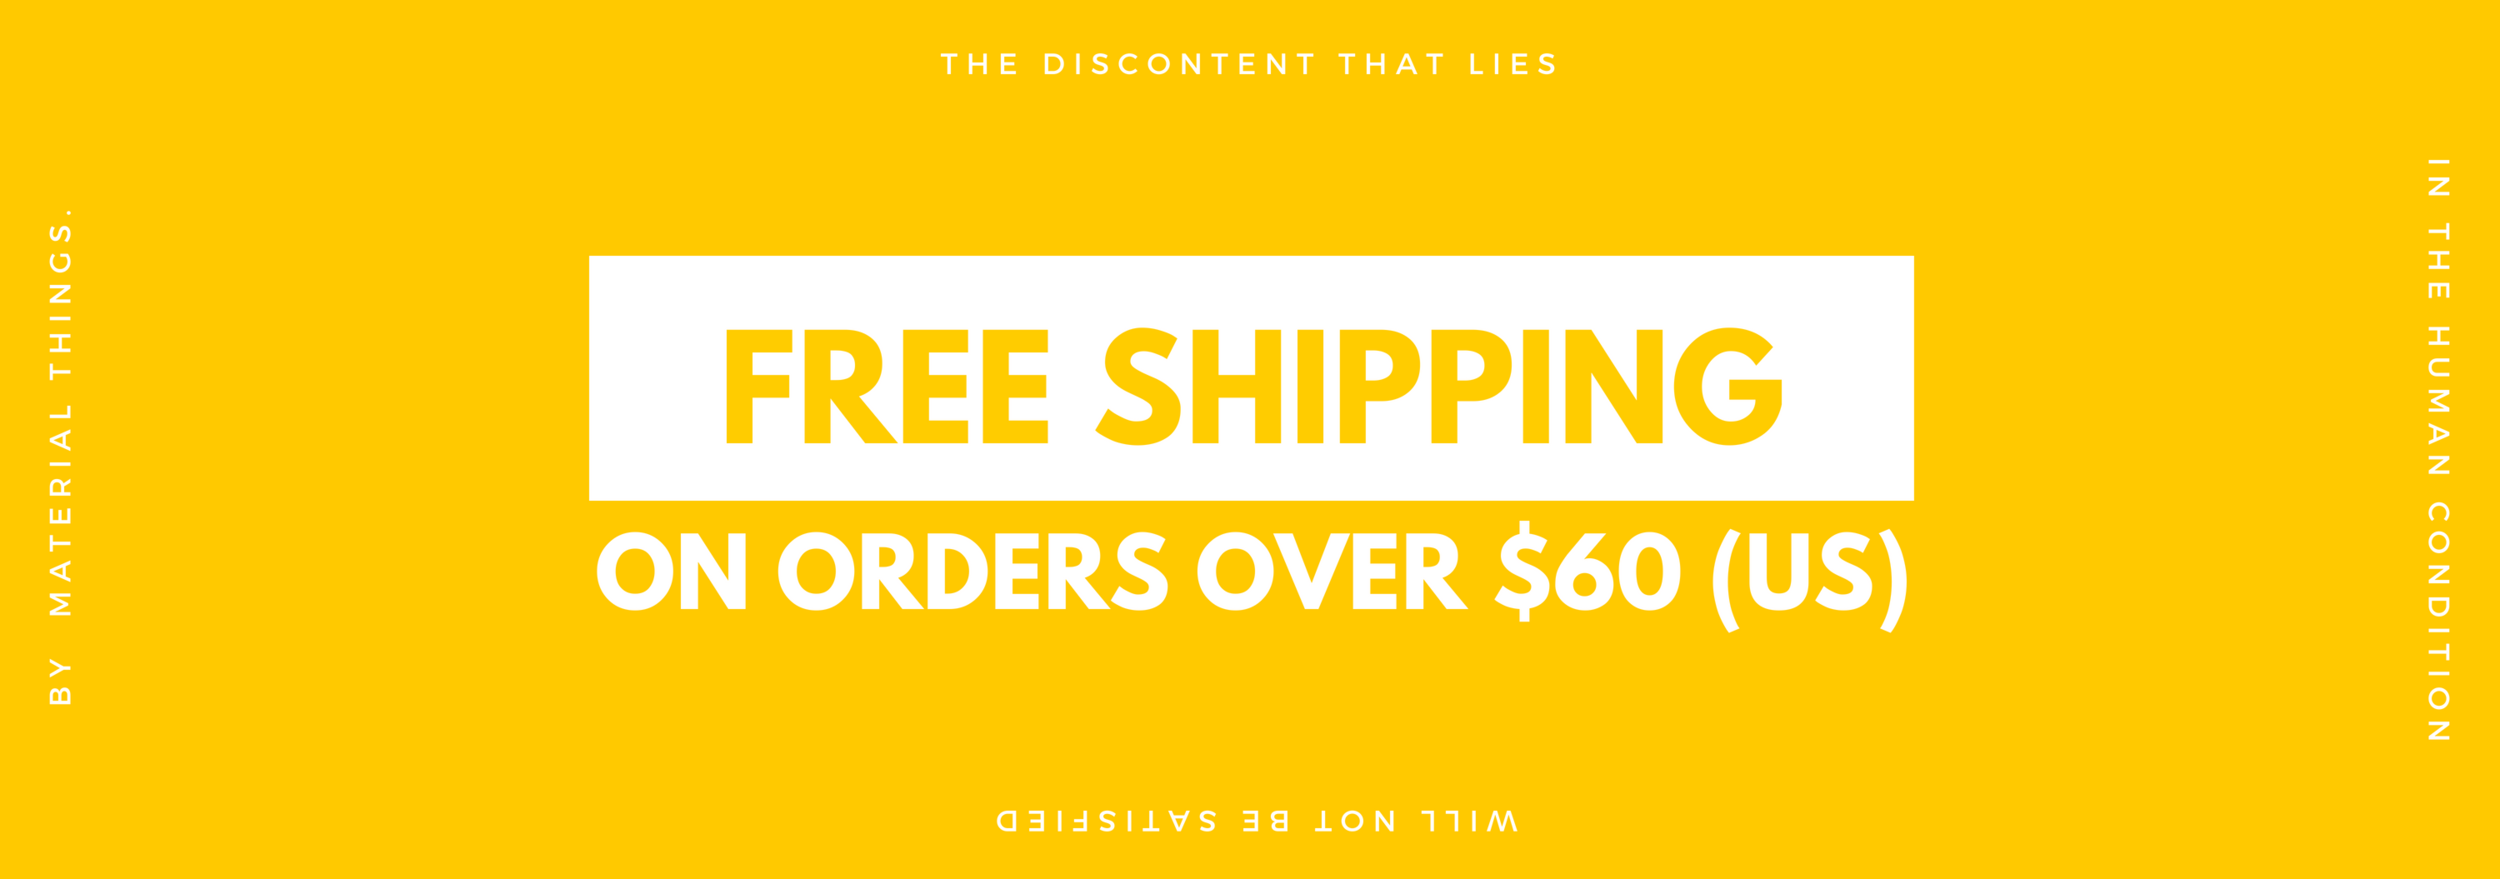 FREE SHIPPING (1).png